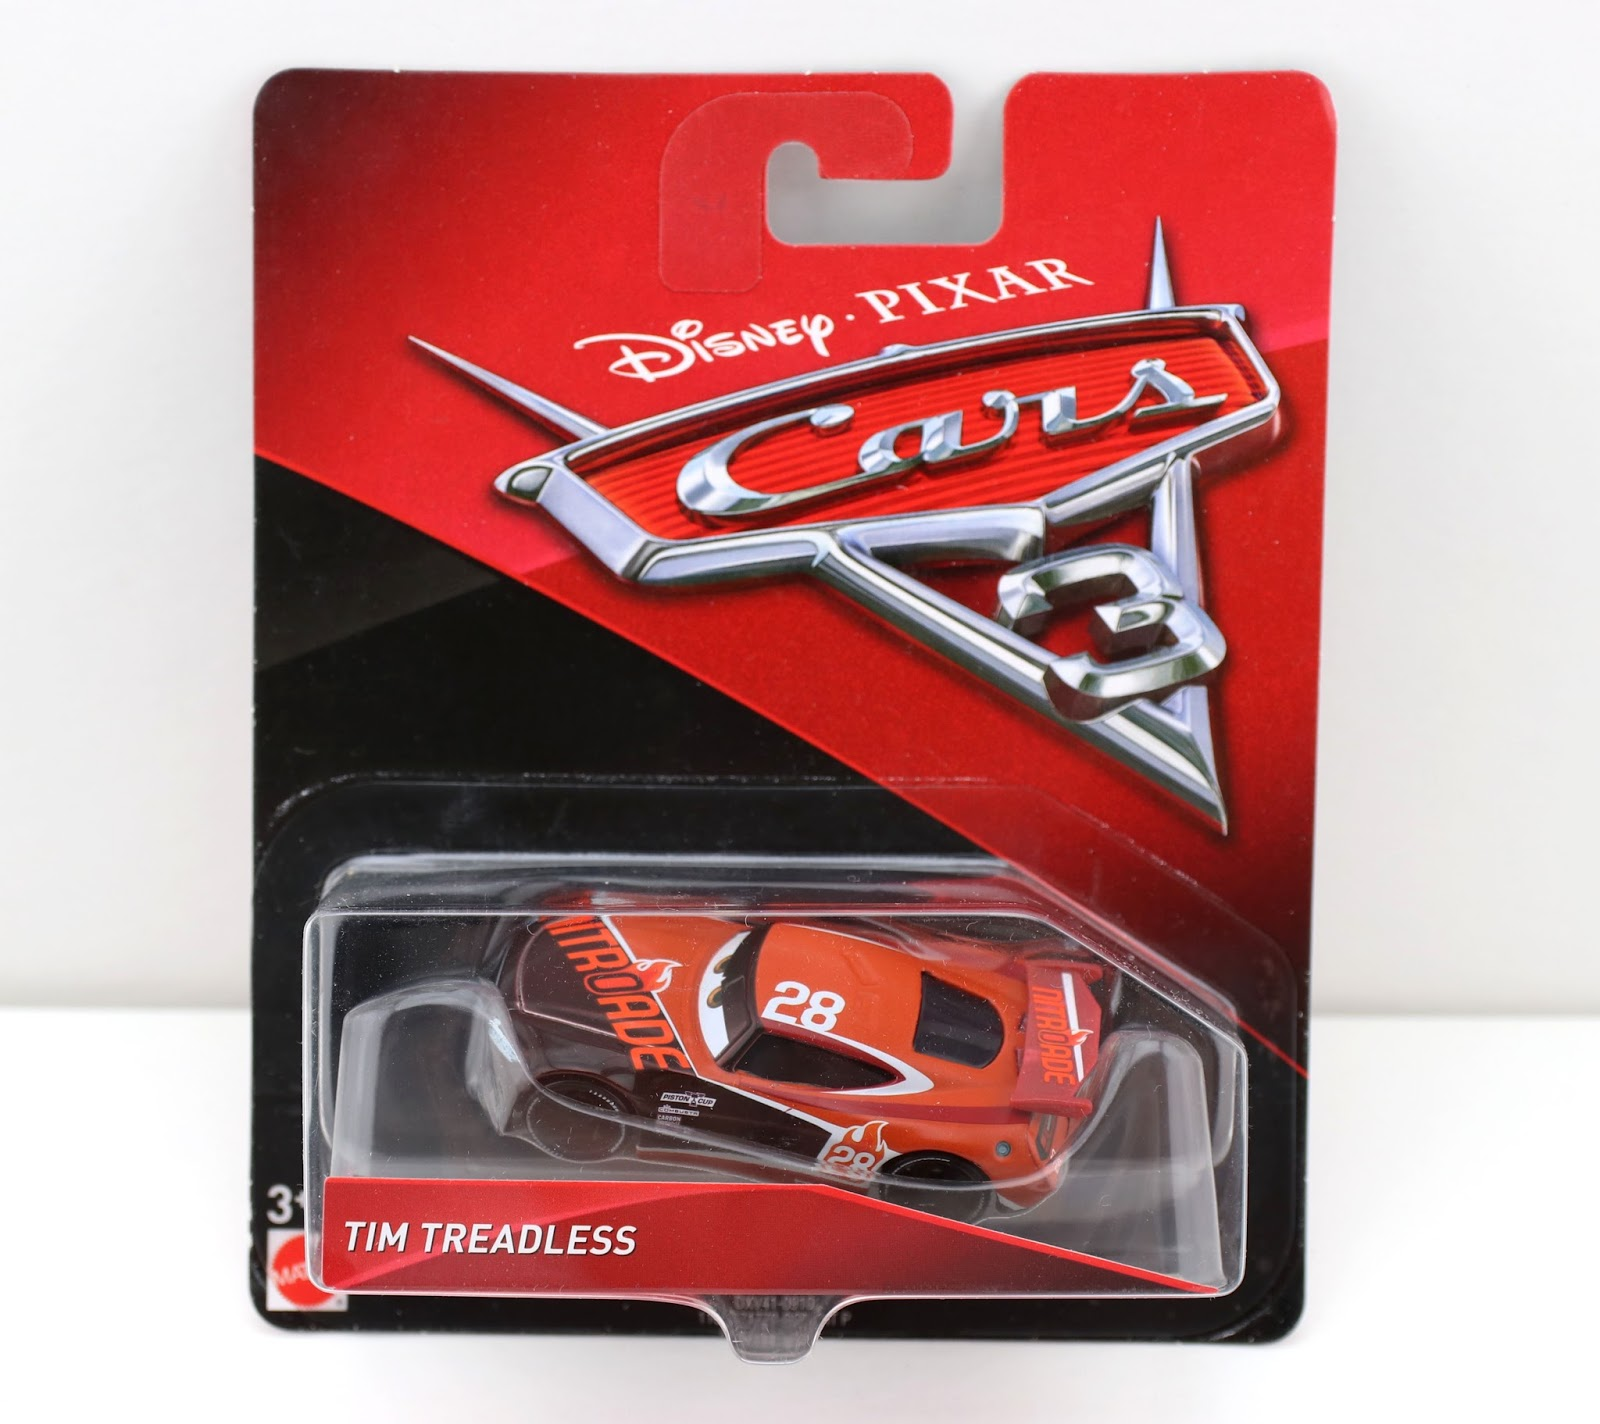 Cars 3 Tim Treadless diecast mattel